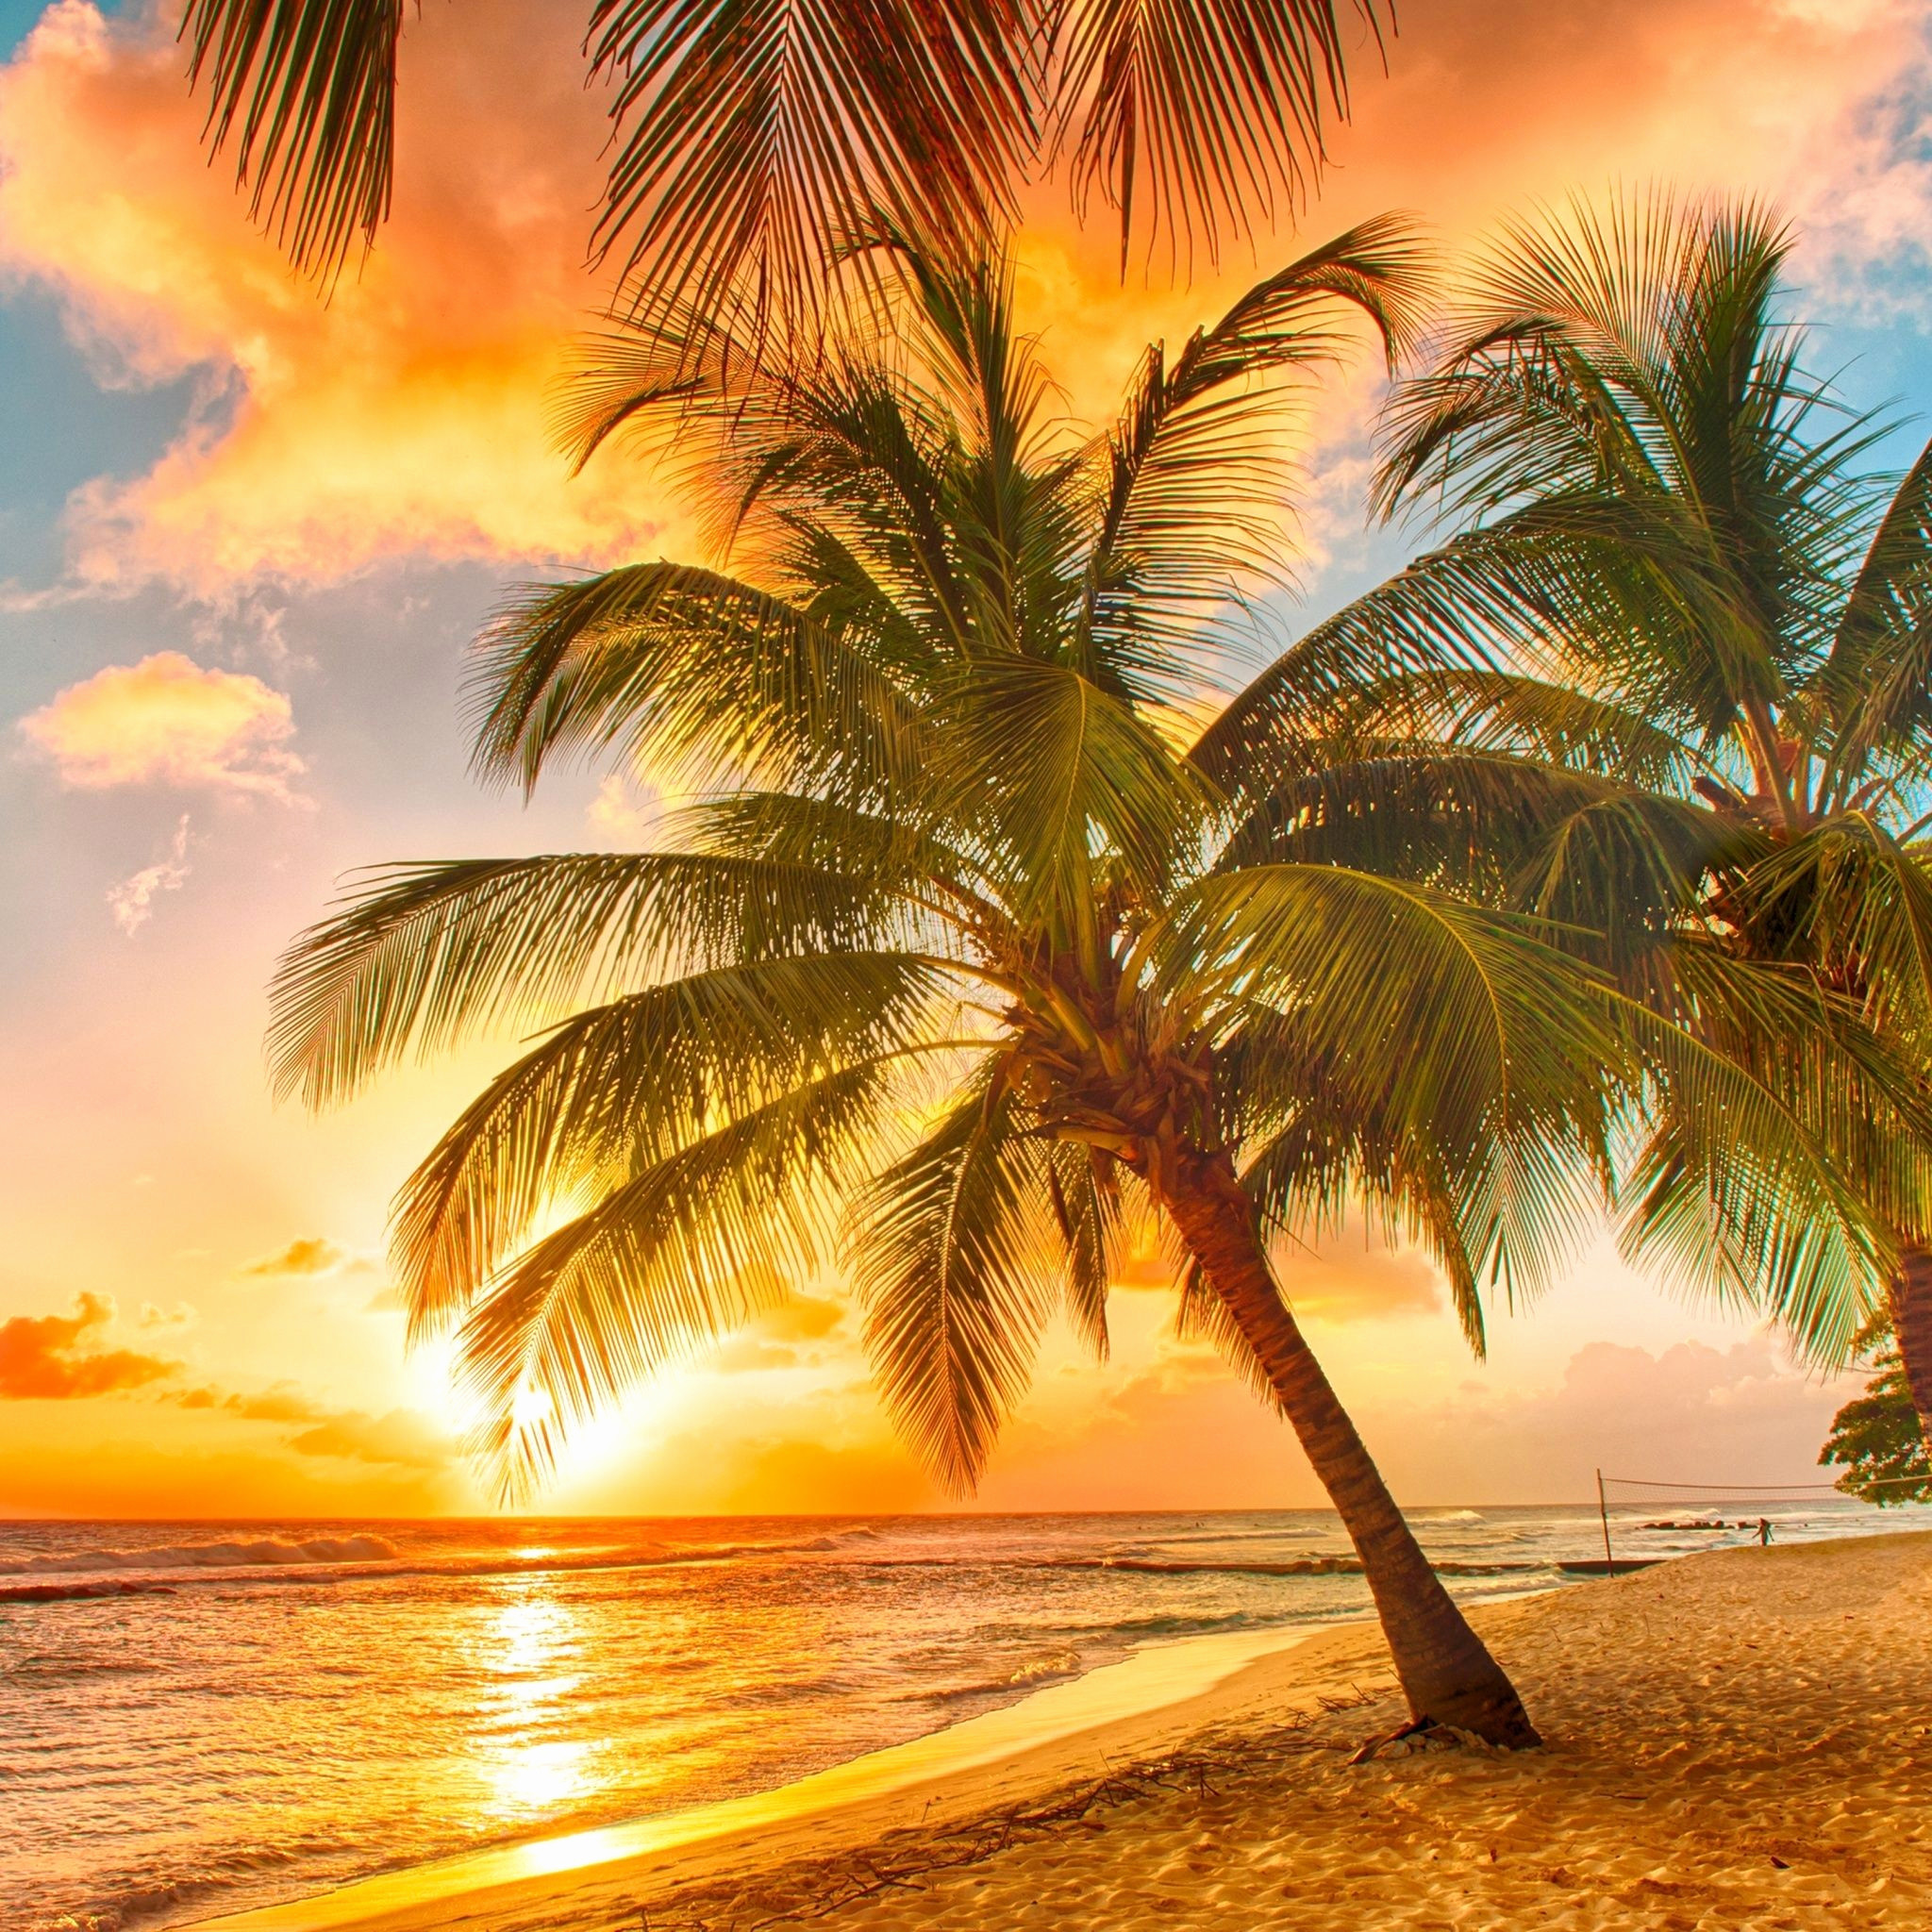 2048x2048, Palm Tree Wallpaper Awesome Palm Trees Beach - Tropical Beach Sunset Hd - HD Wallpaper